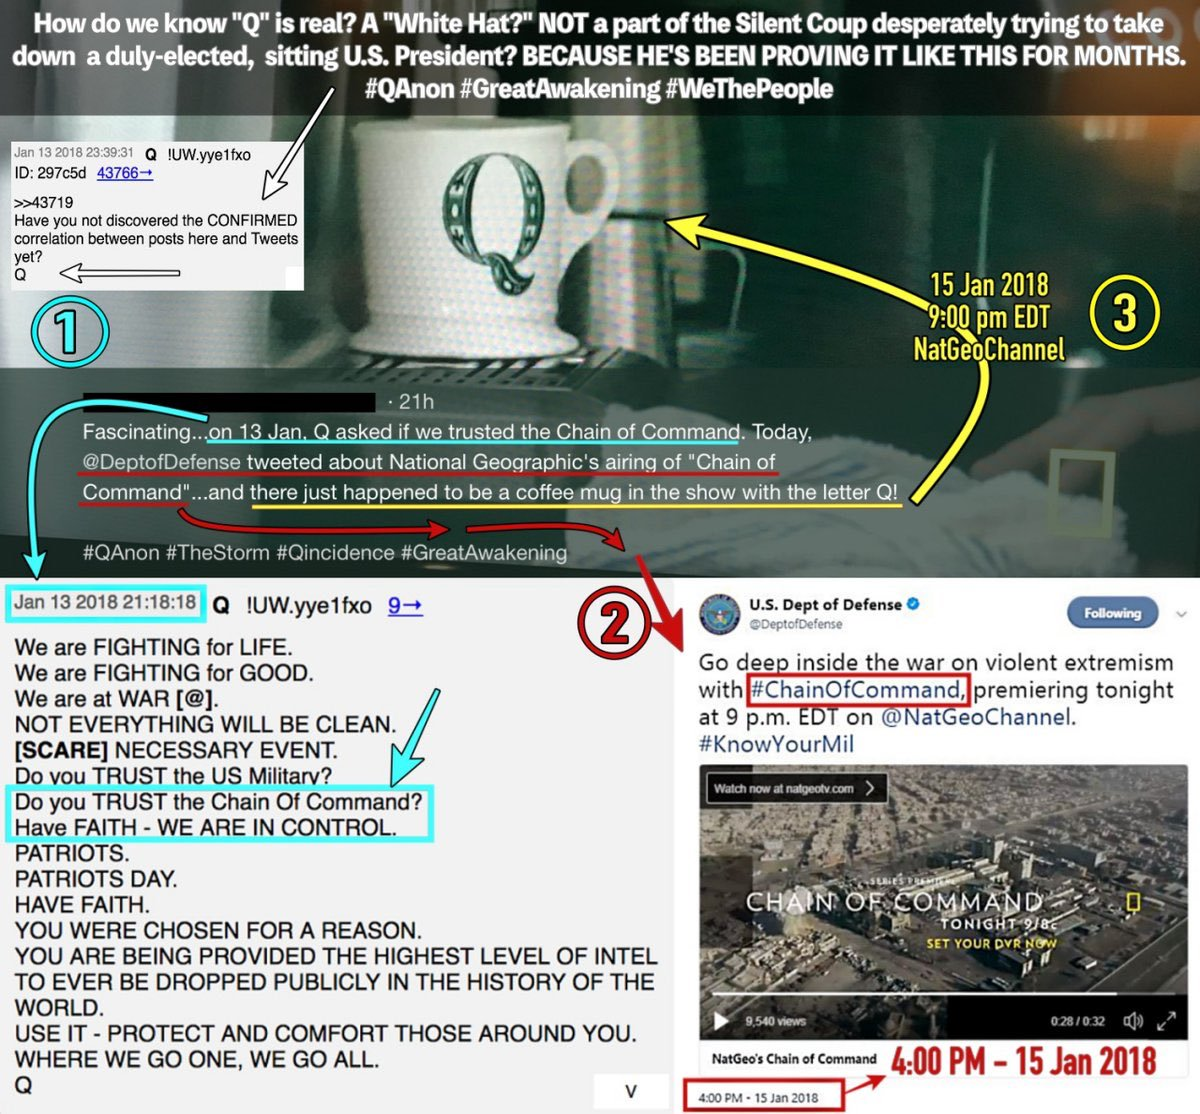 MASSIVE MASSIVE MASSIVE #NEWQ POSTS! #QANON Talks about the Shooter at the White House today, and MORE! #GreatAwakening